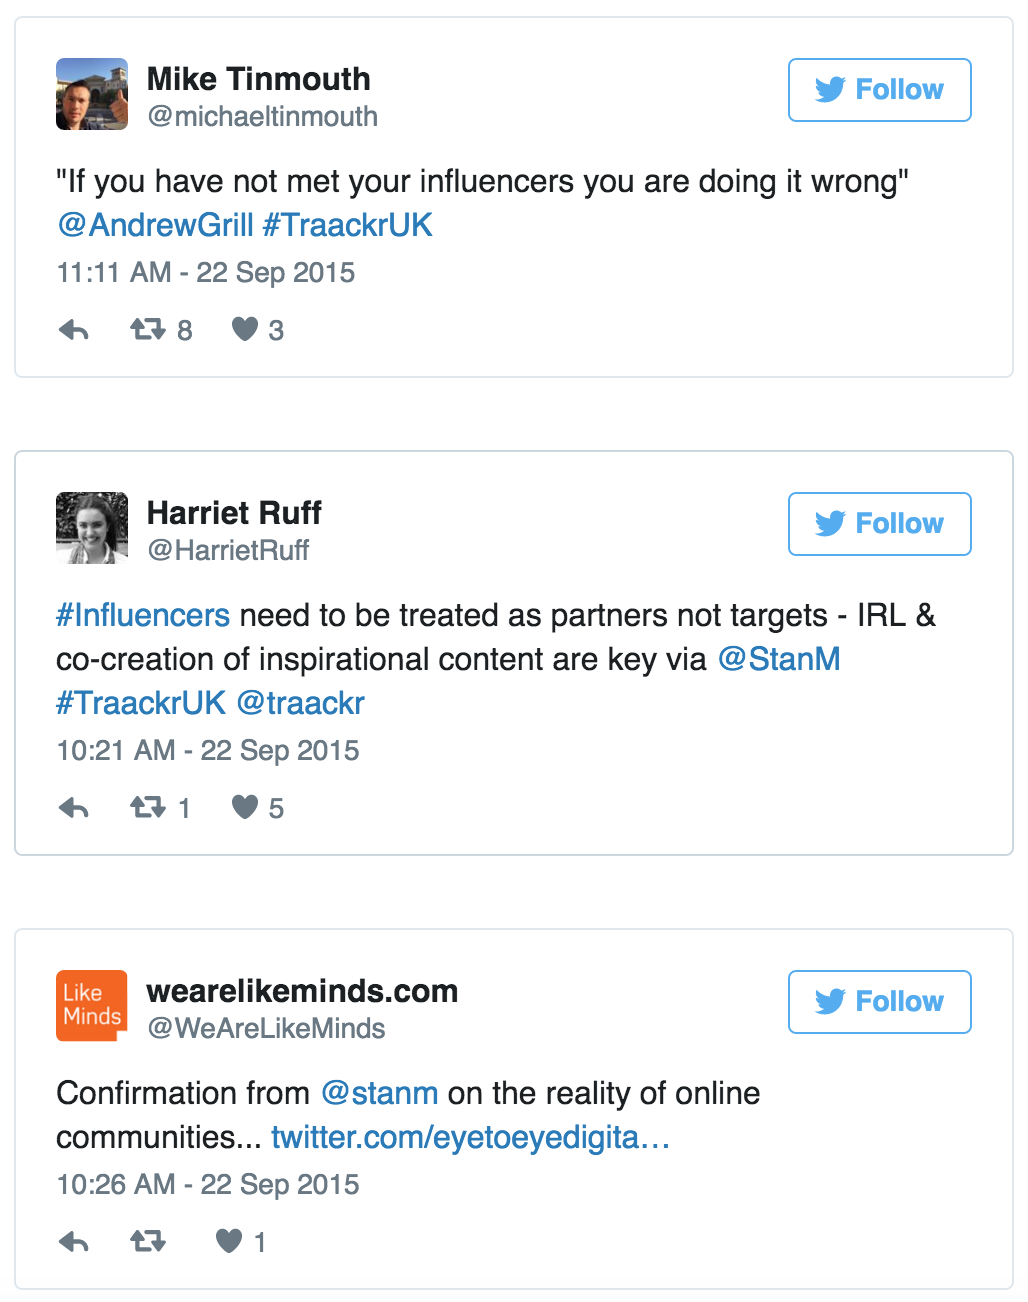 Tweets on managing influencer relations